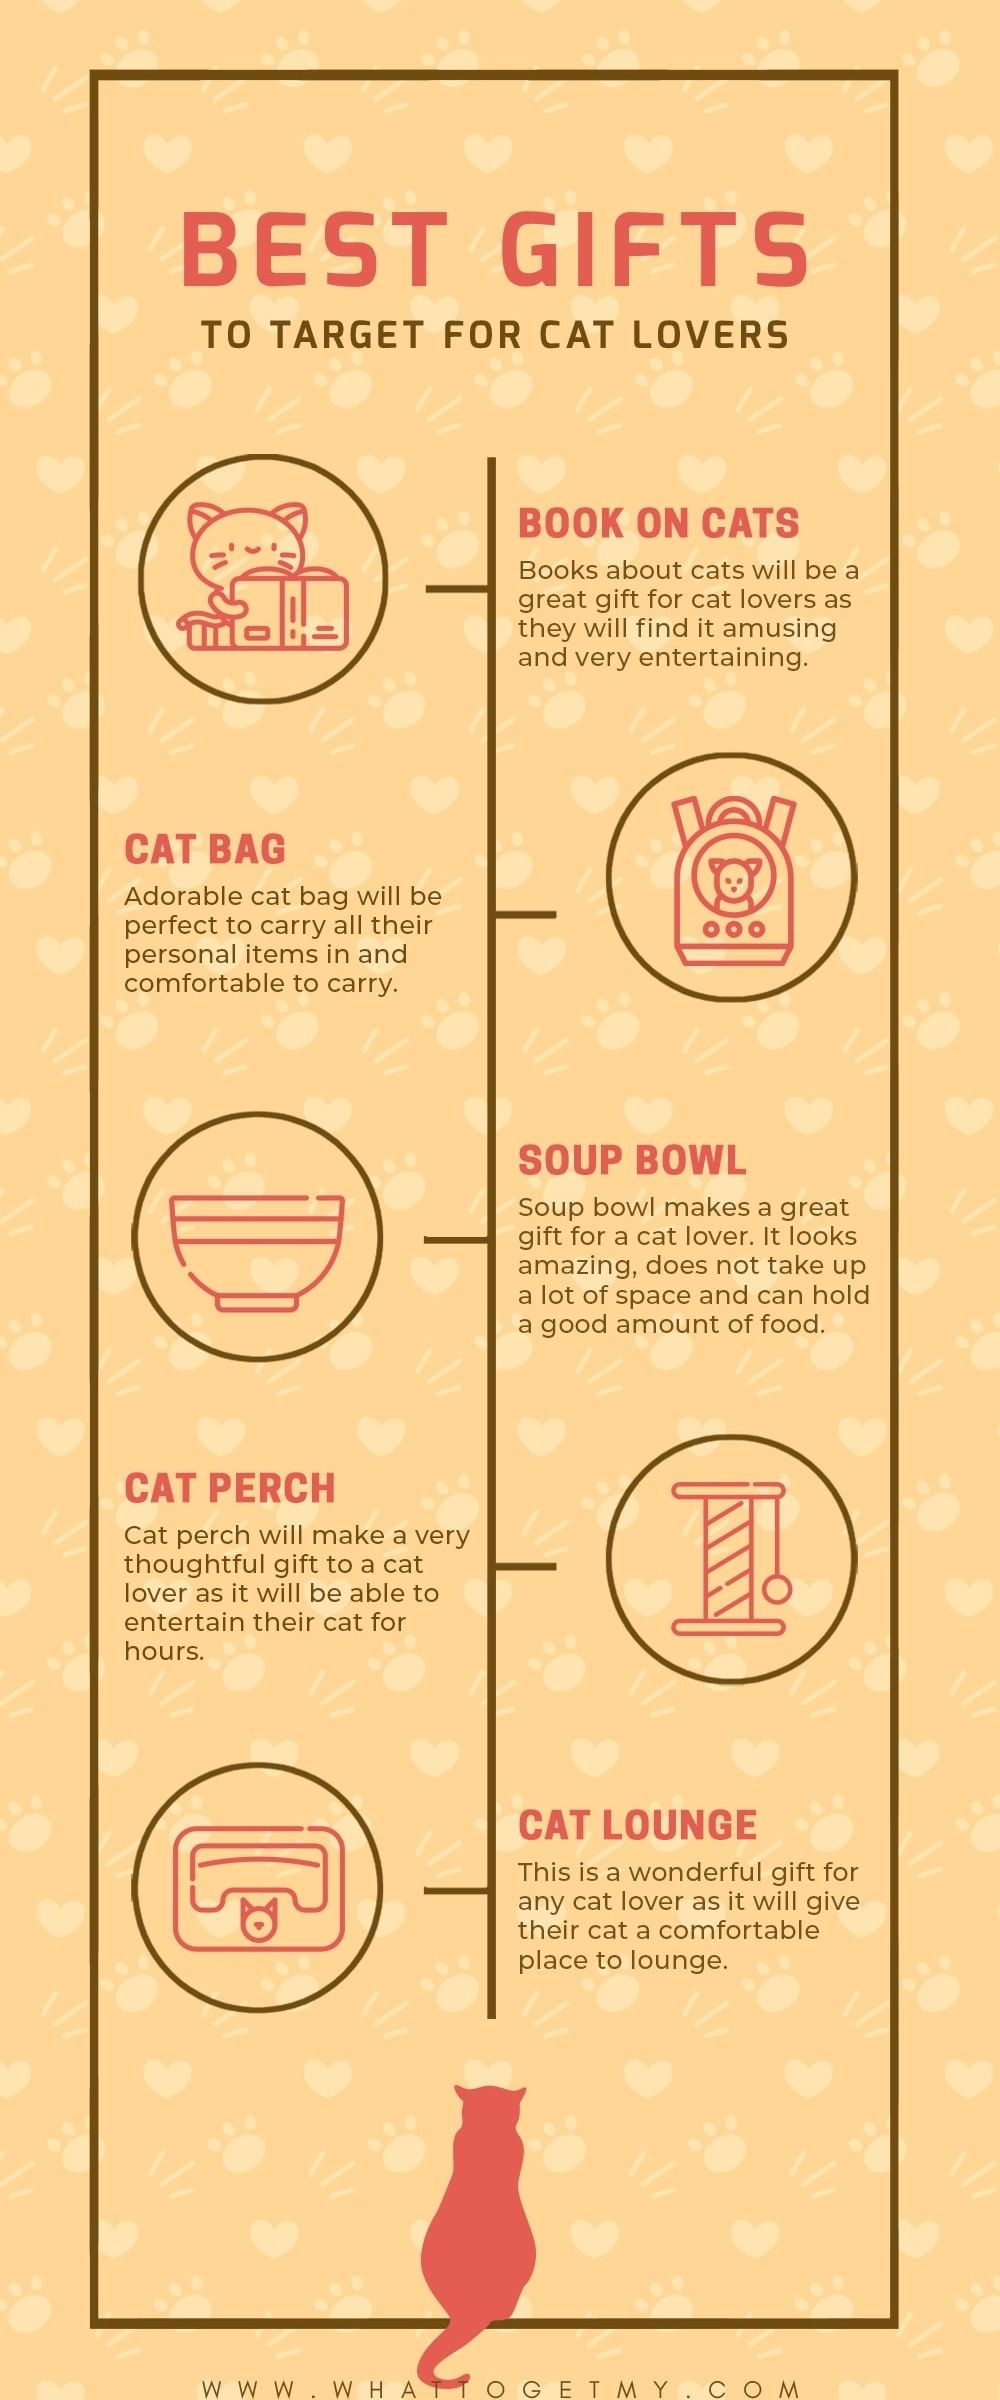 Infographic BEST GIFTS TO TARGET FOR CAT LOVERS